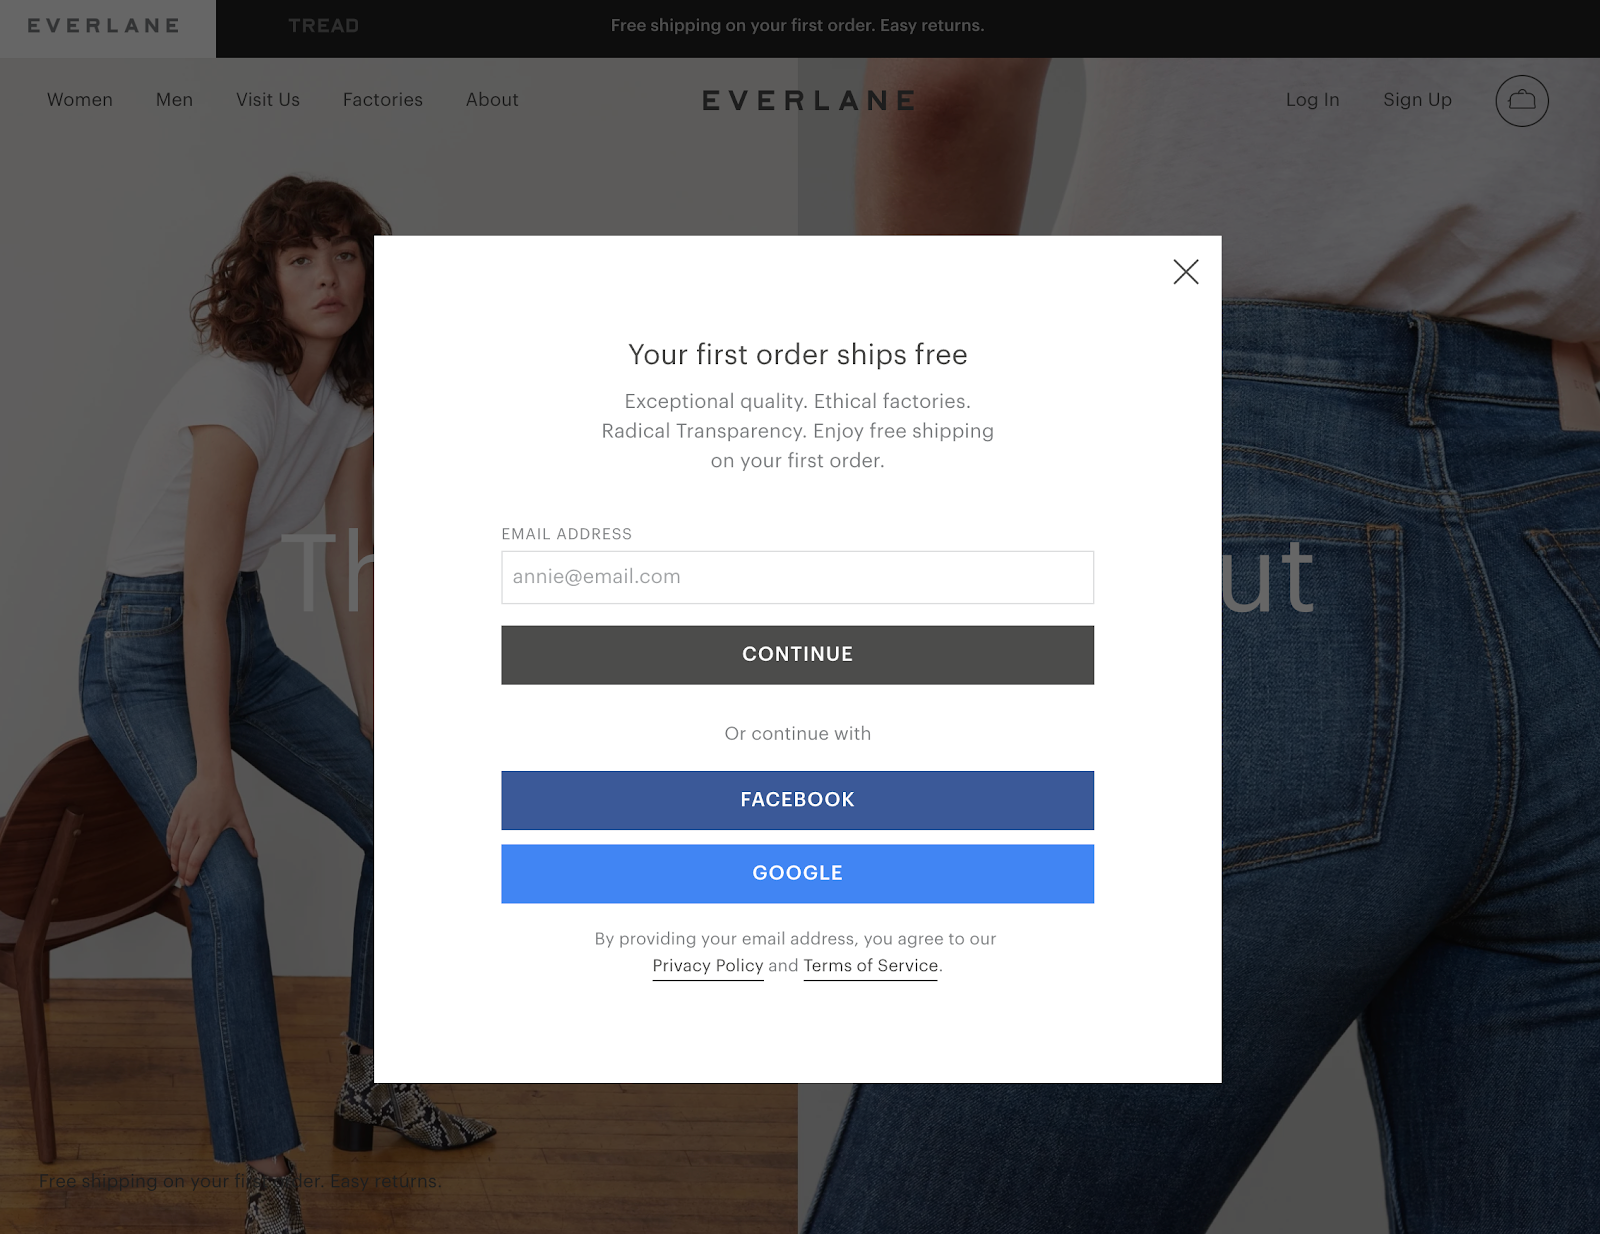 Screenshot of Everlane website